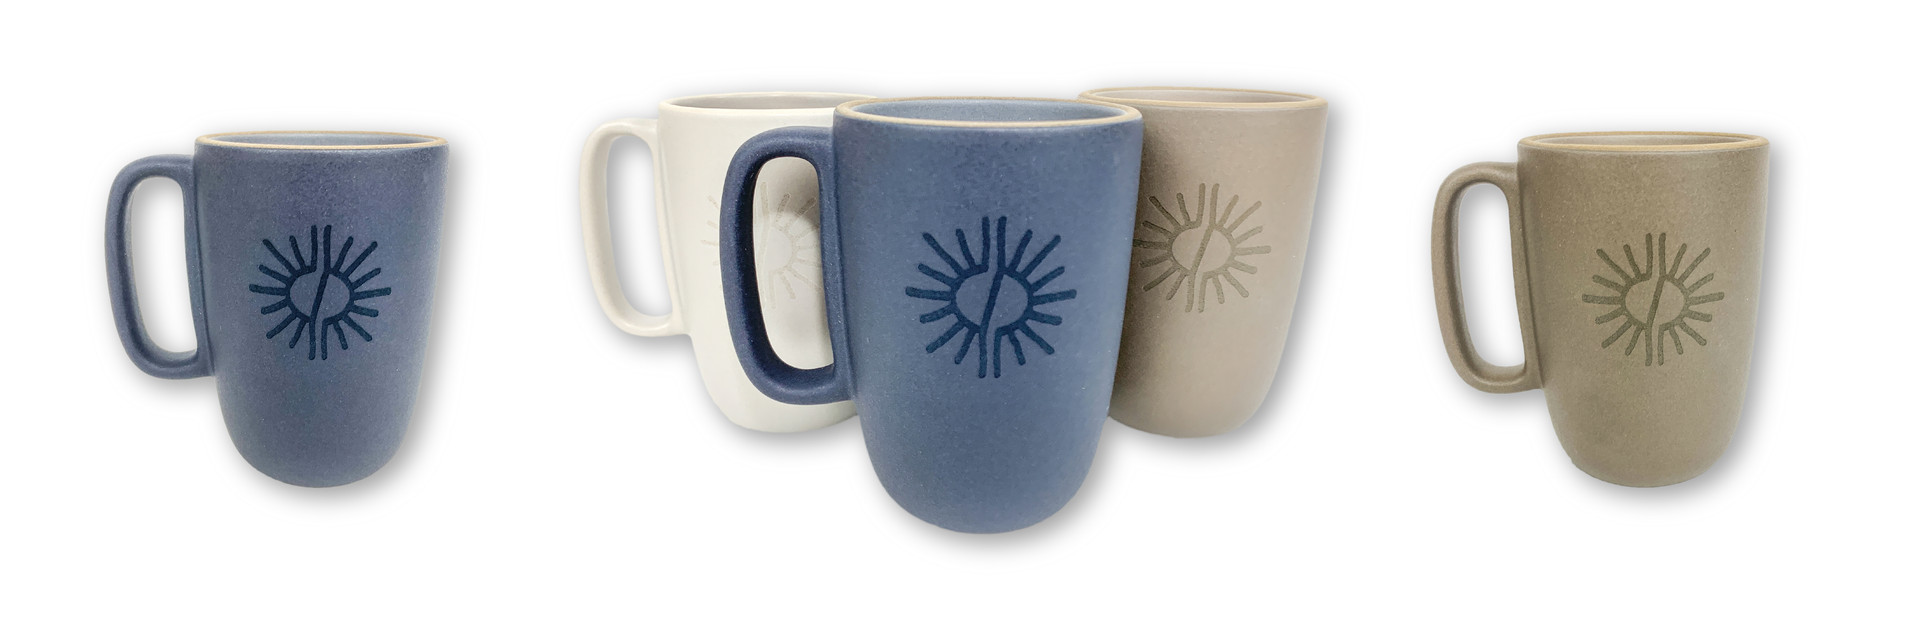 CUSTOM ETCHED CERAMIC COFFEE MUGS